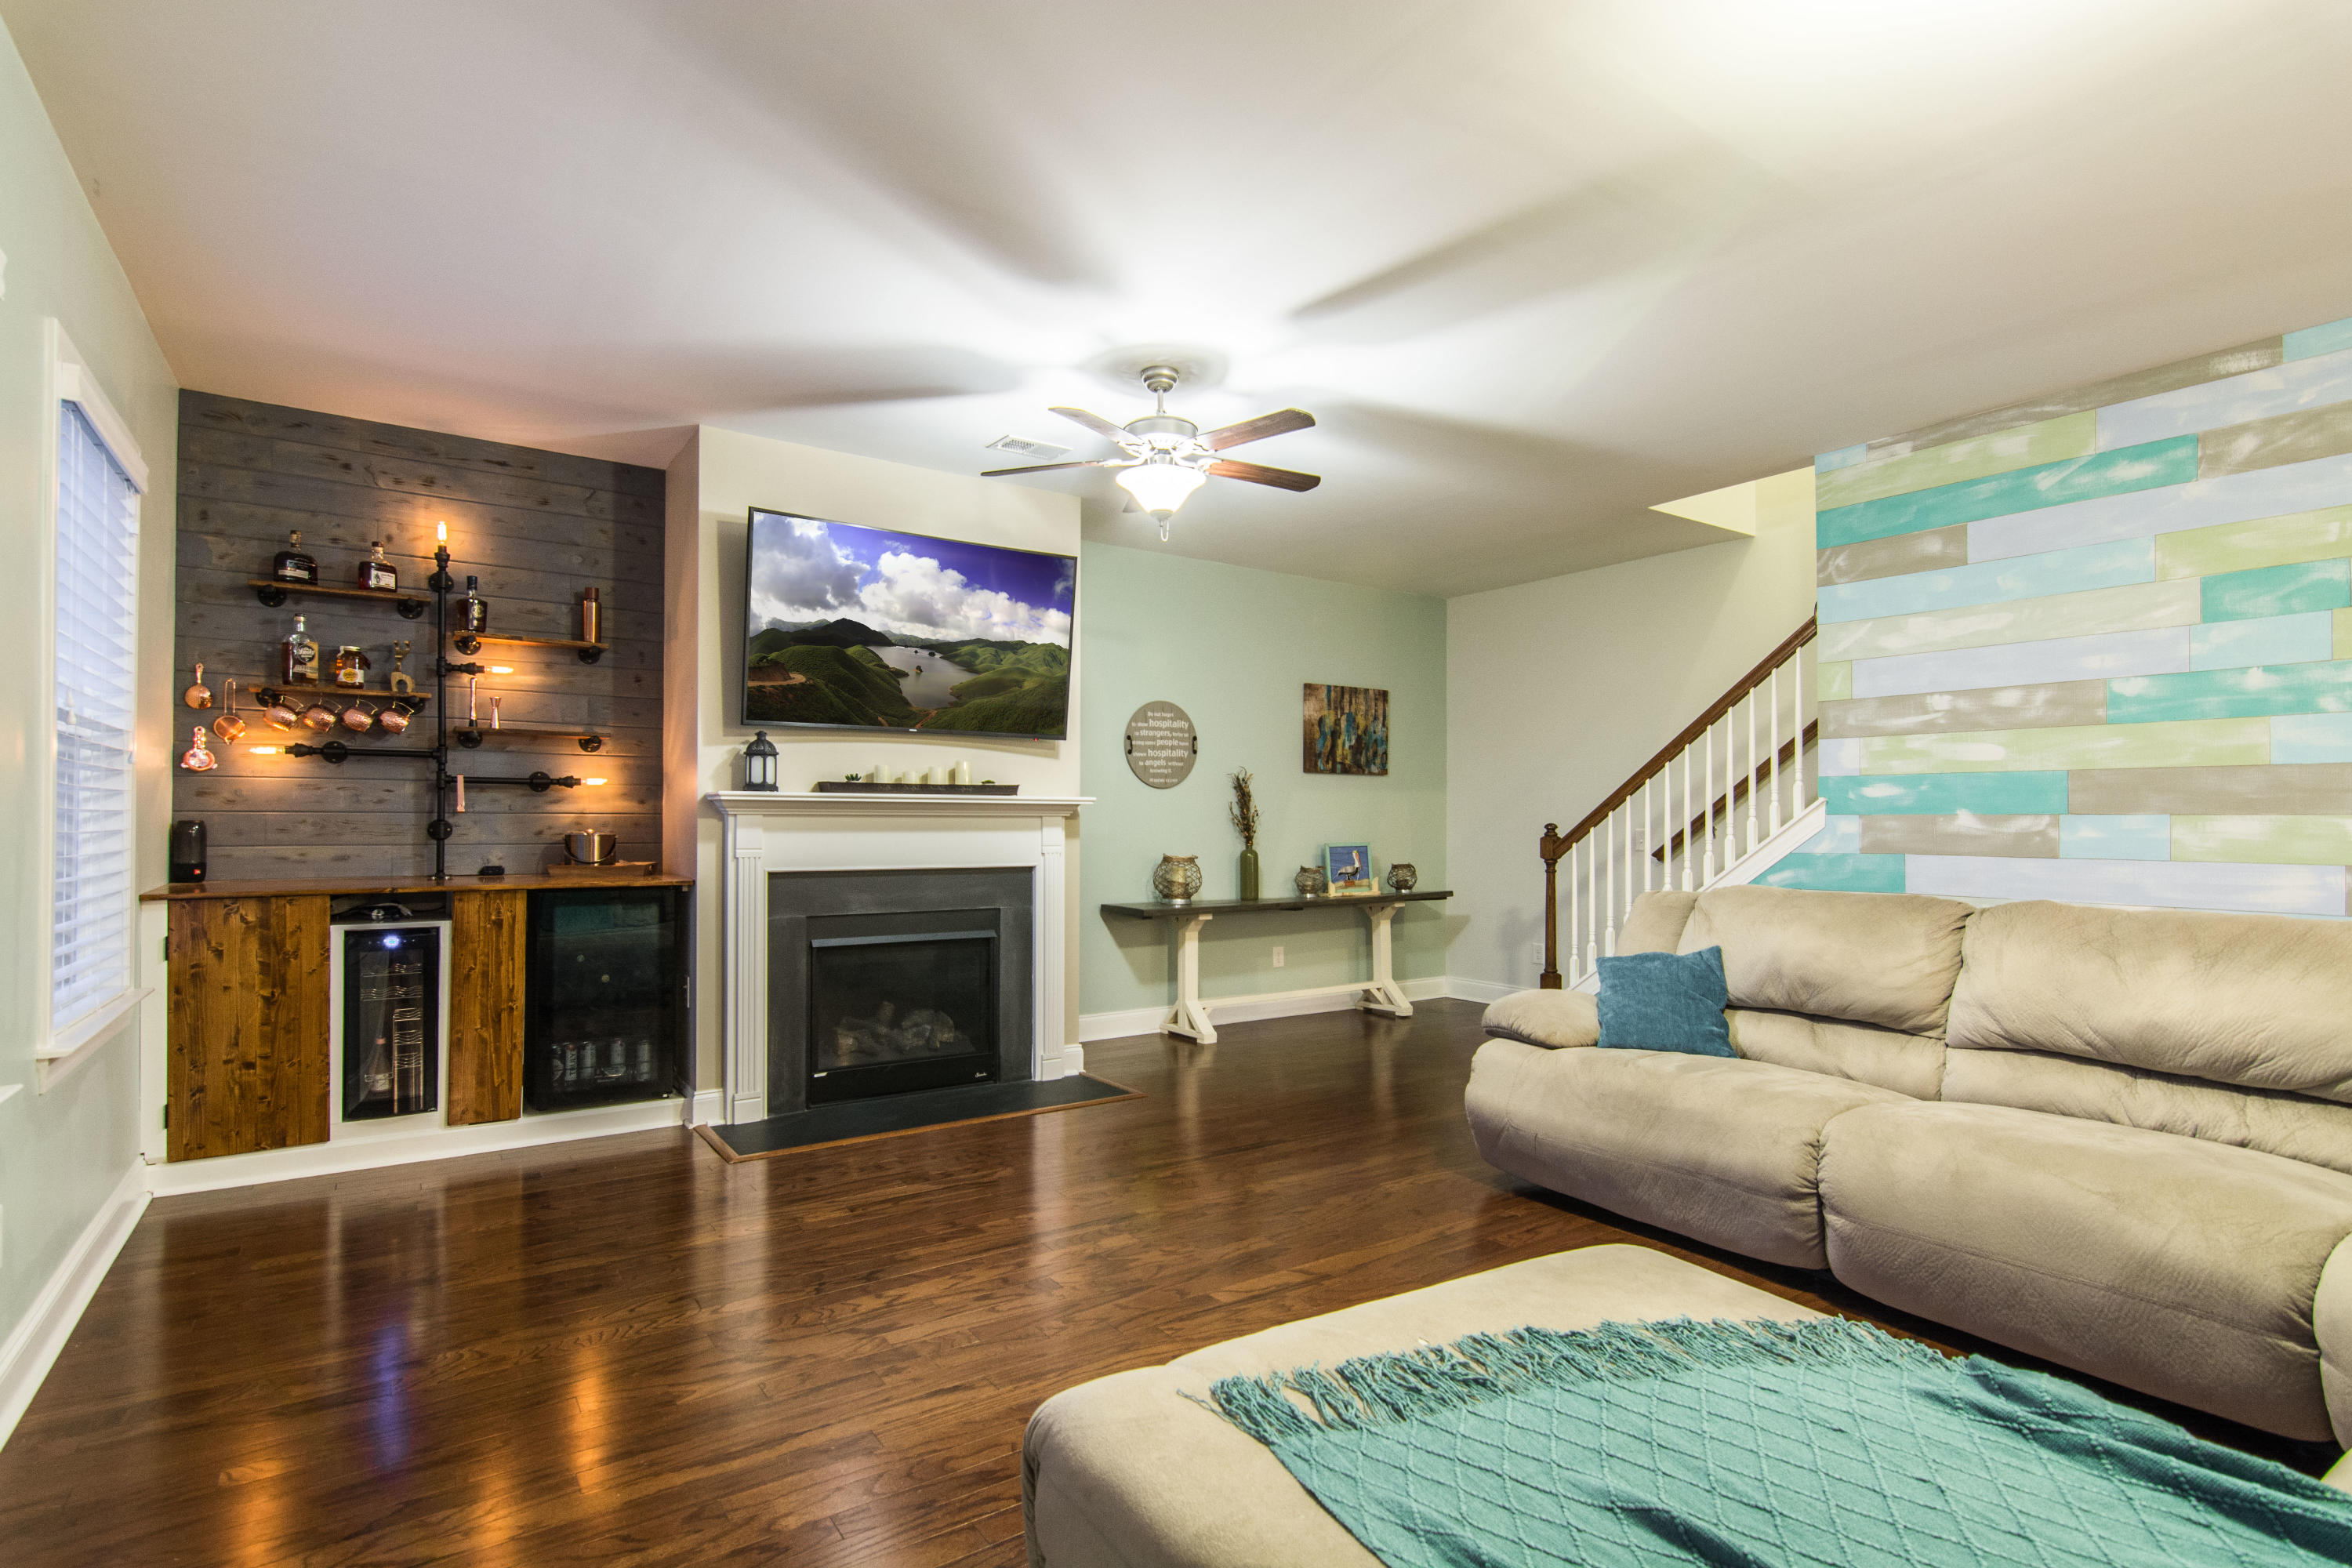 252 Calm Water Way Summerville, SC 29486